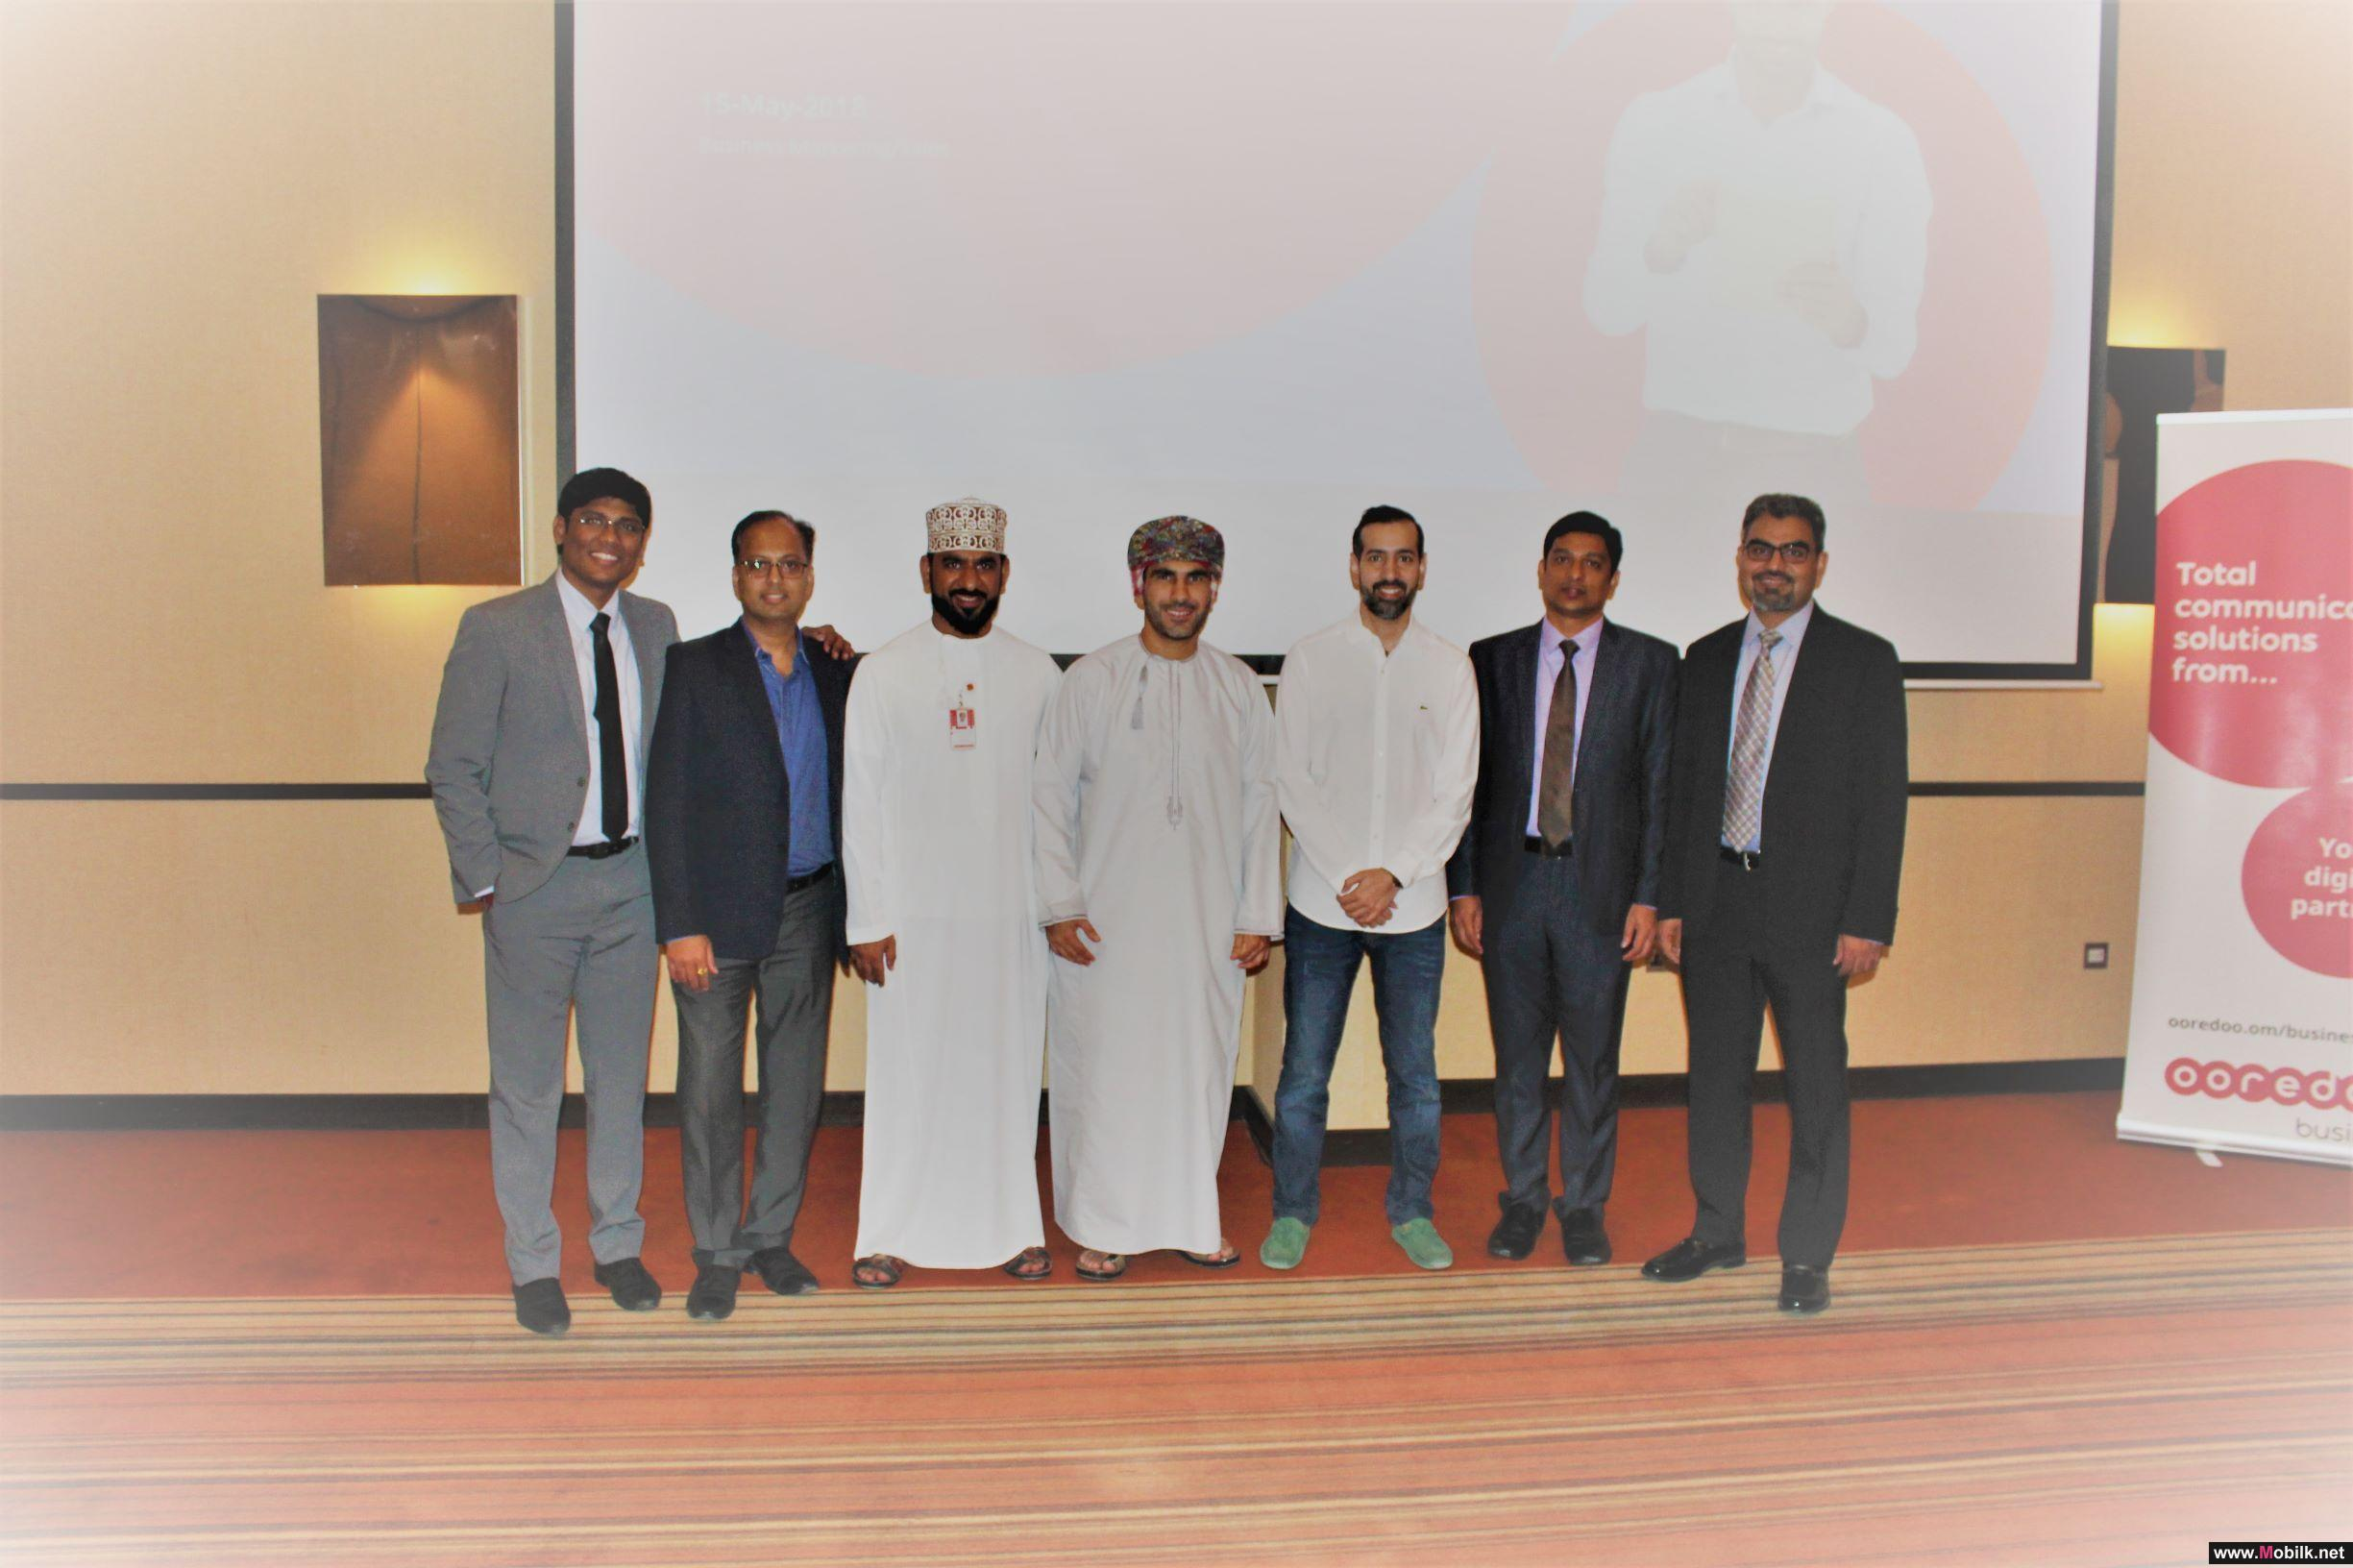 Ooredoo Keeps SMEs Connected and Showcases Tailor-Made Solutions at Suhar Event